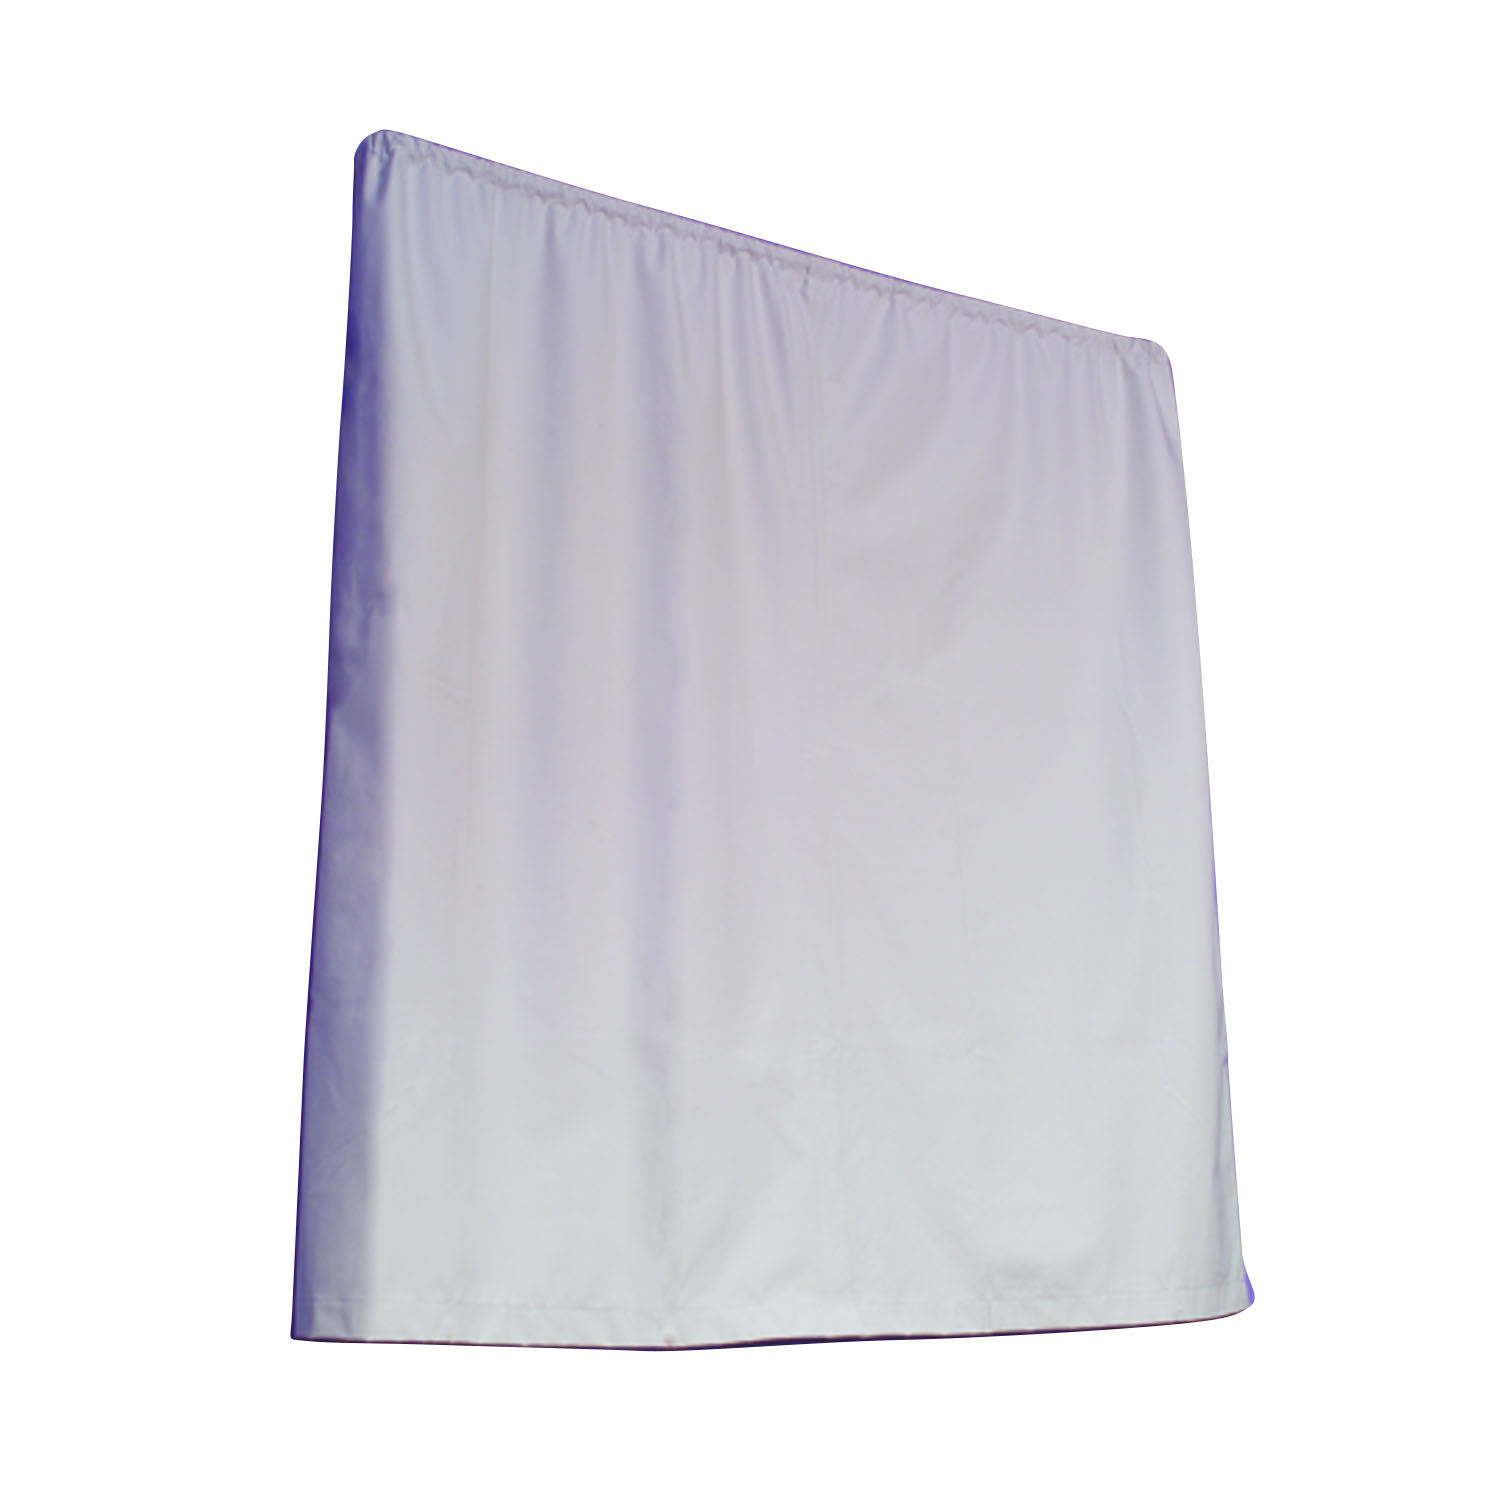 Nursery Drapery Liner Total Light Control Blockout Shade - Cream - 60""